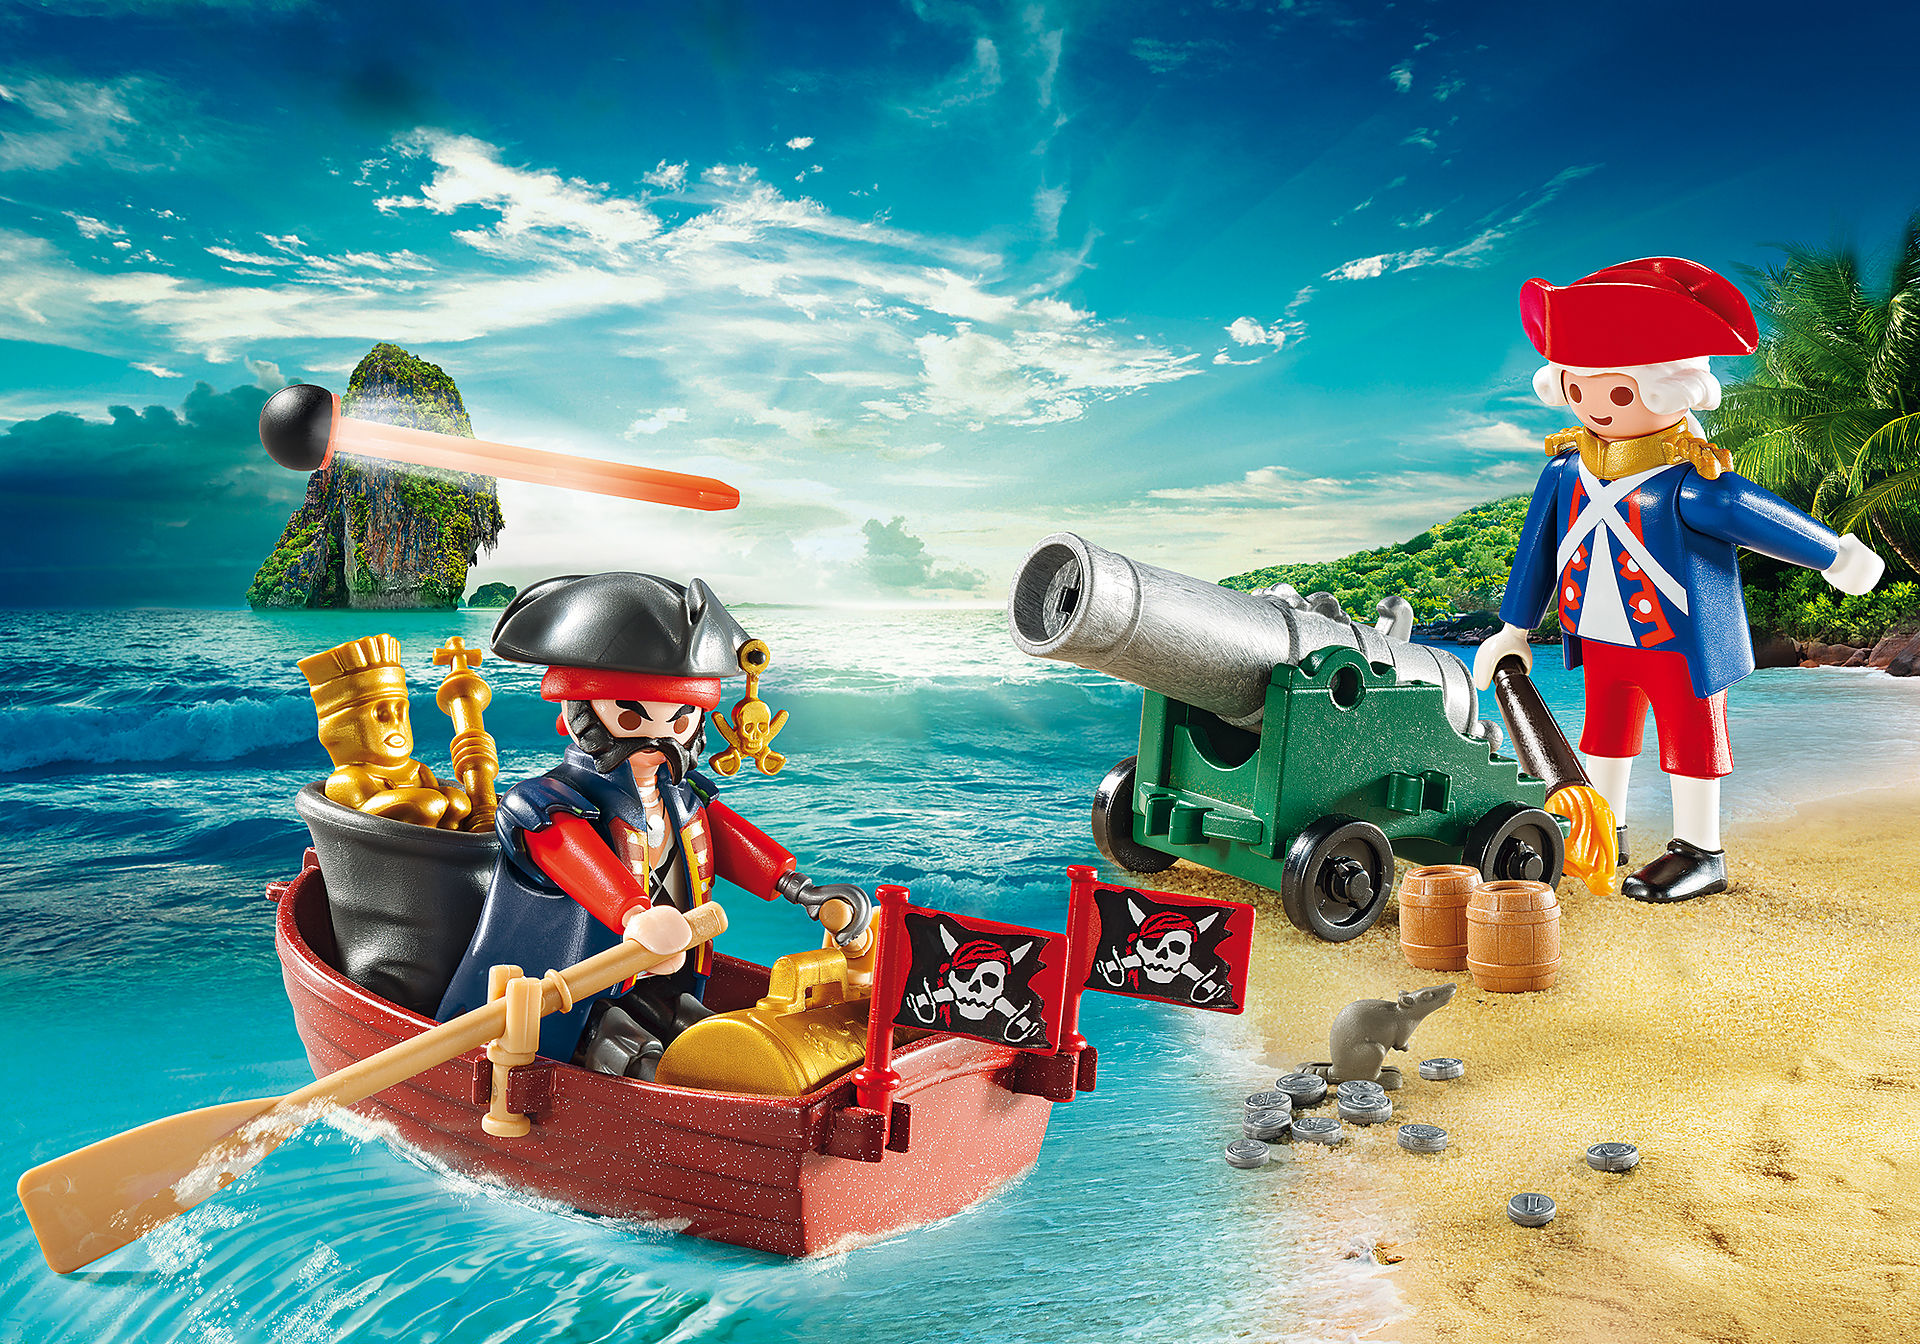 http://media.playmobil.com/i/playmobil/9102_product_detail/Pirate Raider Carry Case